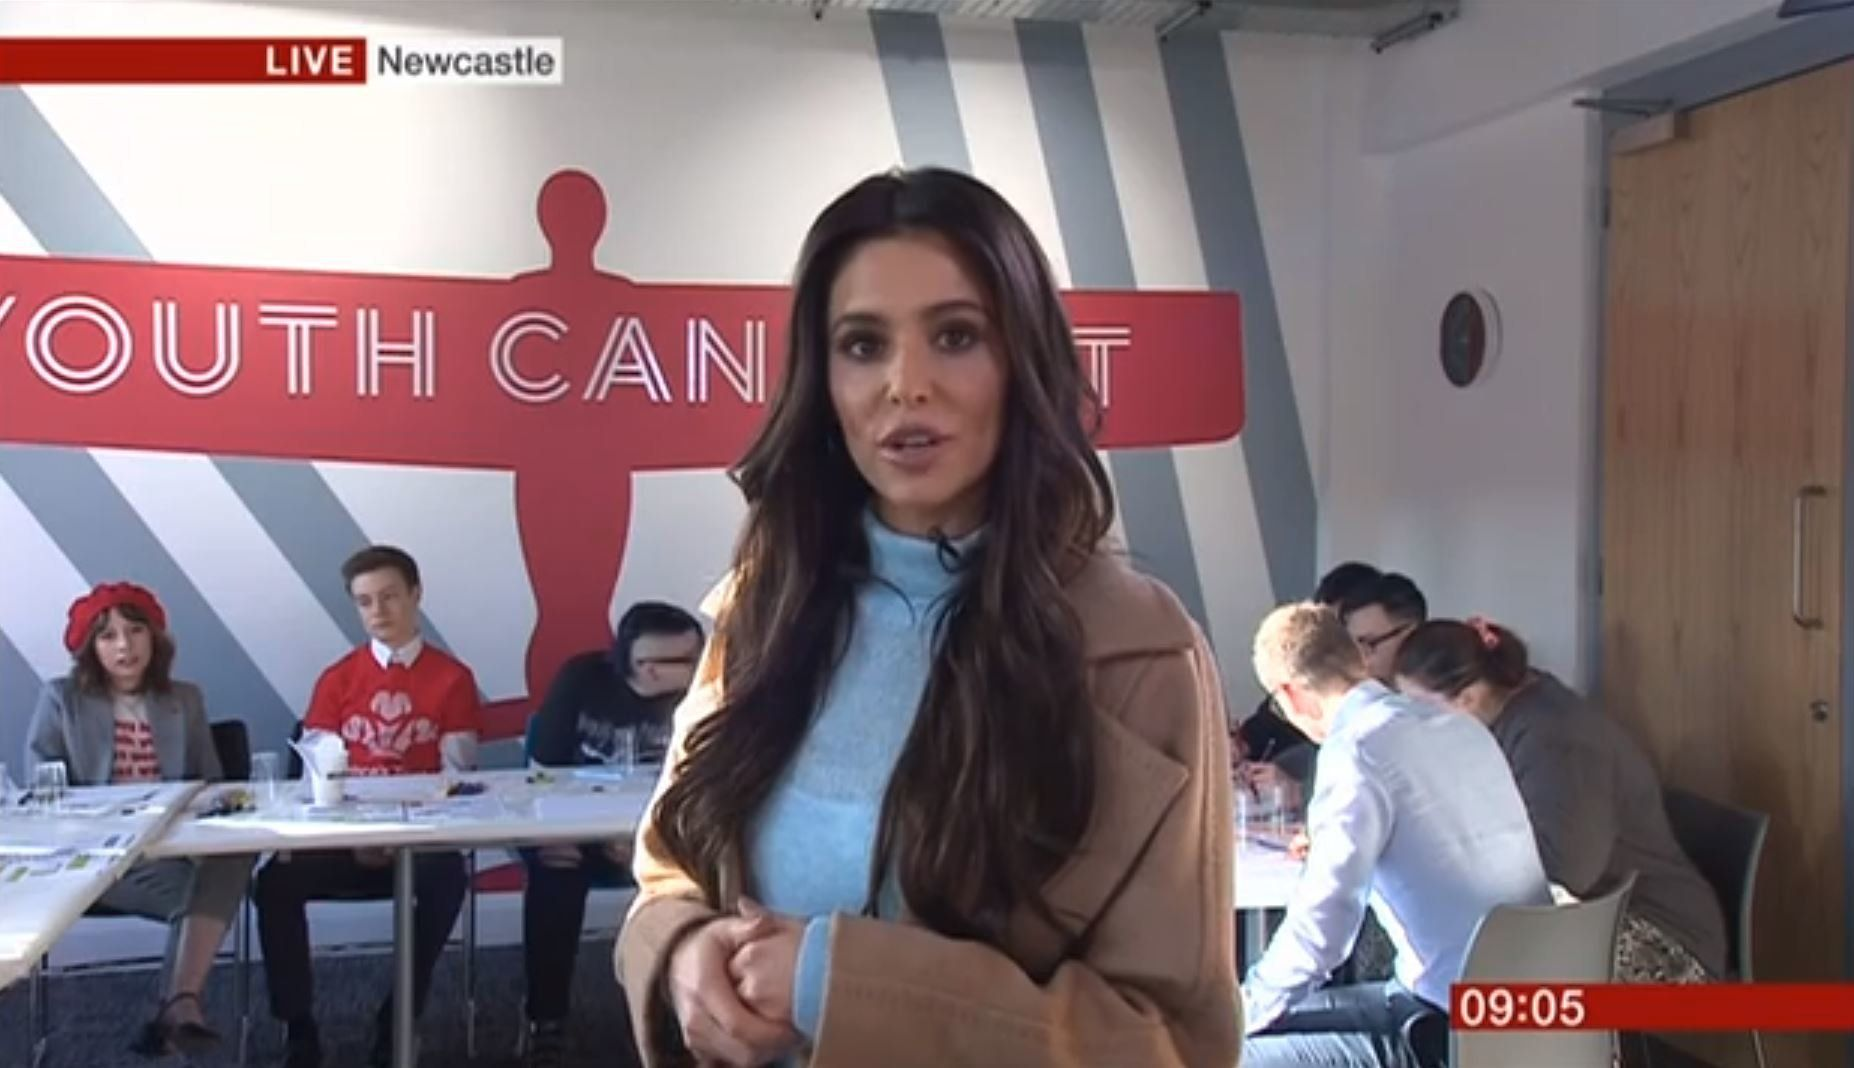 Cheryl made an appearance on 'BBC Breakfast' to discuss the opening of her youth